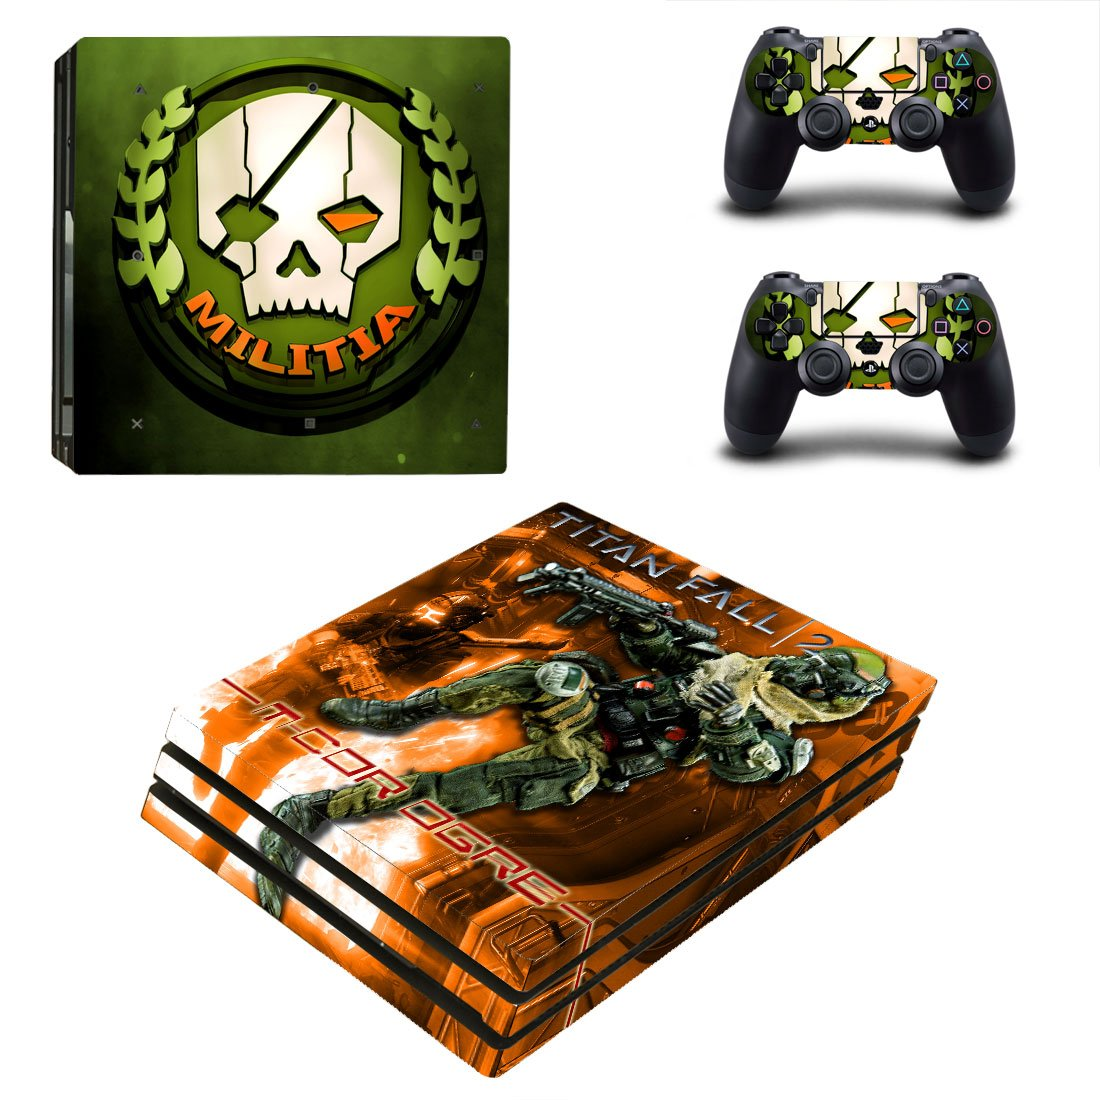 Titanfall PS4 Pro Skin Sticker Decals PS4 Console And Controllers Protect Your PS4